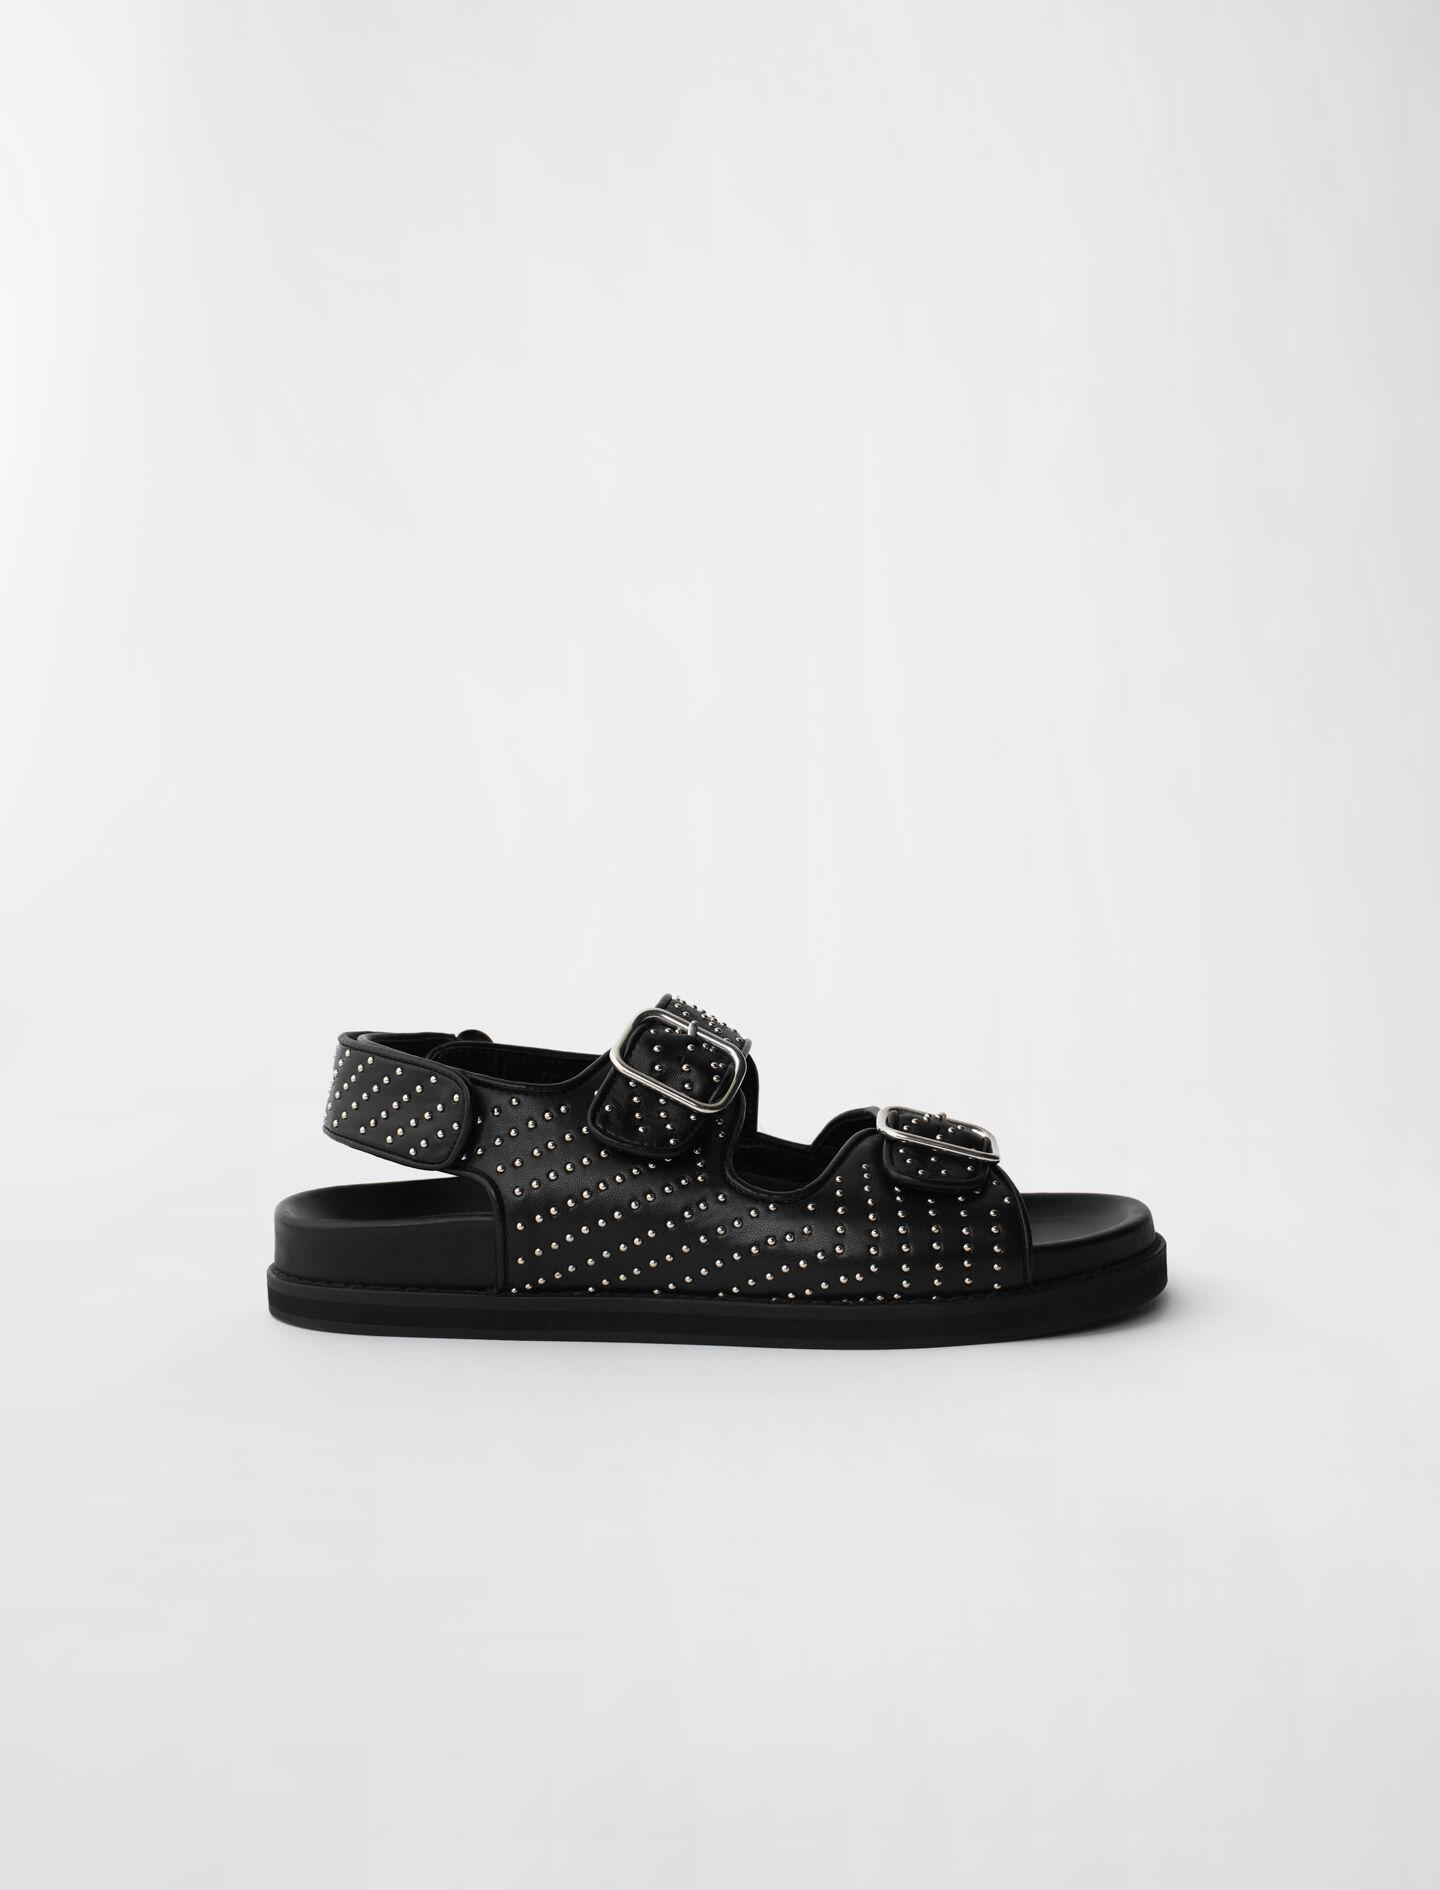 STUDDED SANDALS WITH BUCKLES